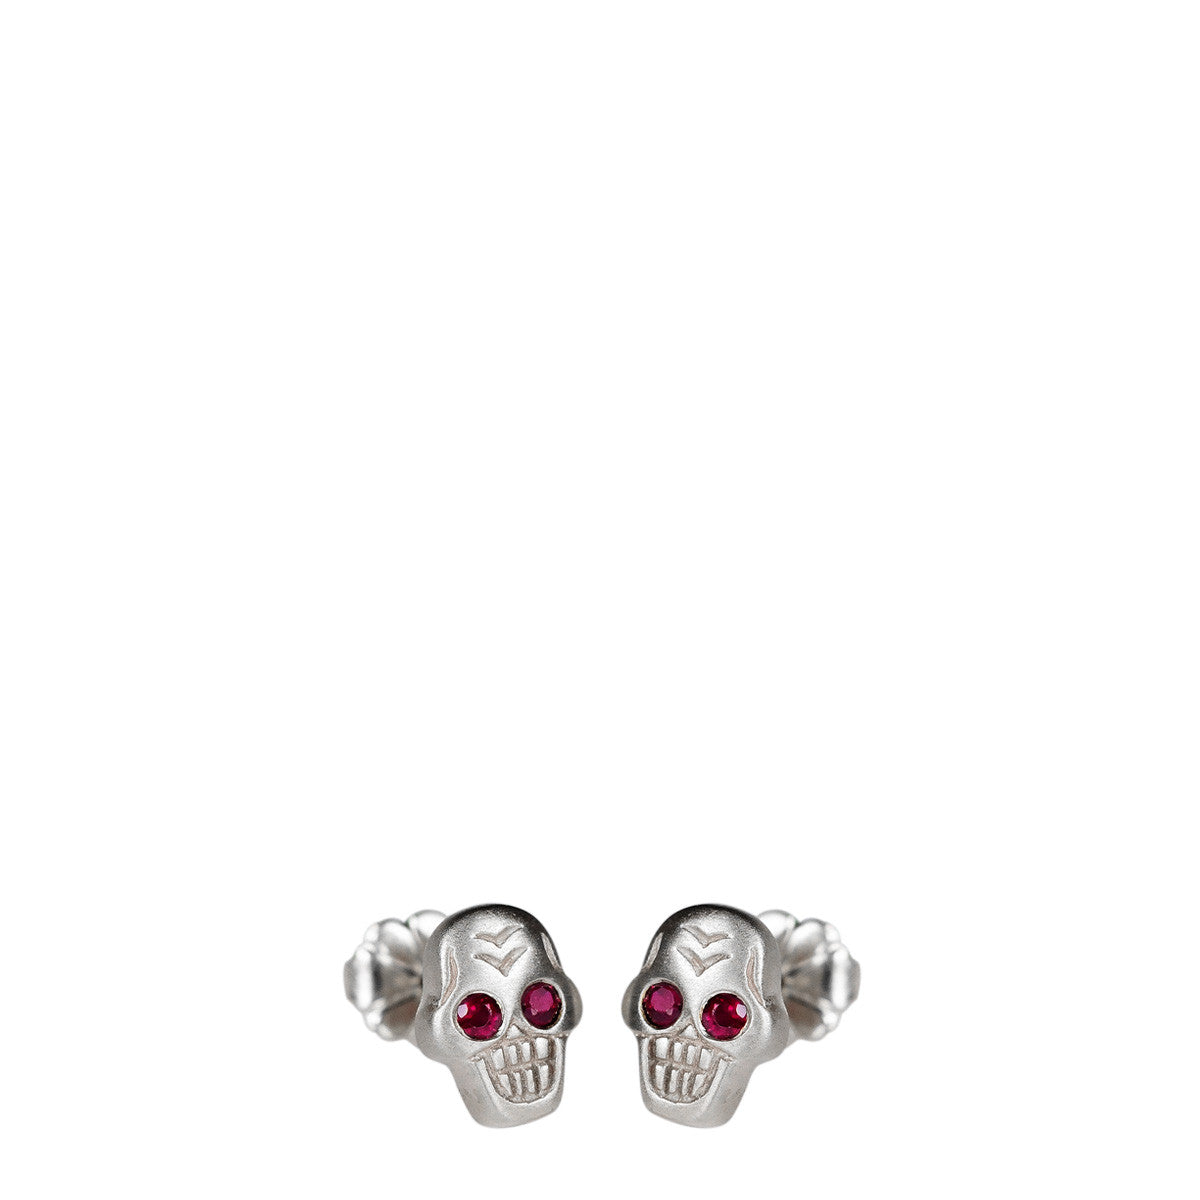 Sterling Silver Tiny Skull Stud Earrings with Ruby Eyes